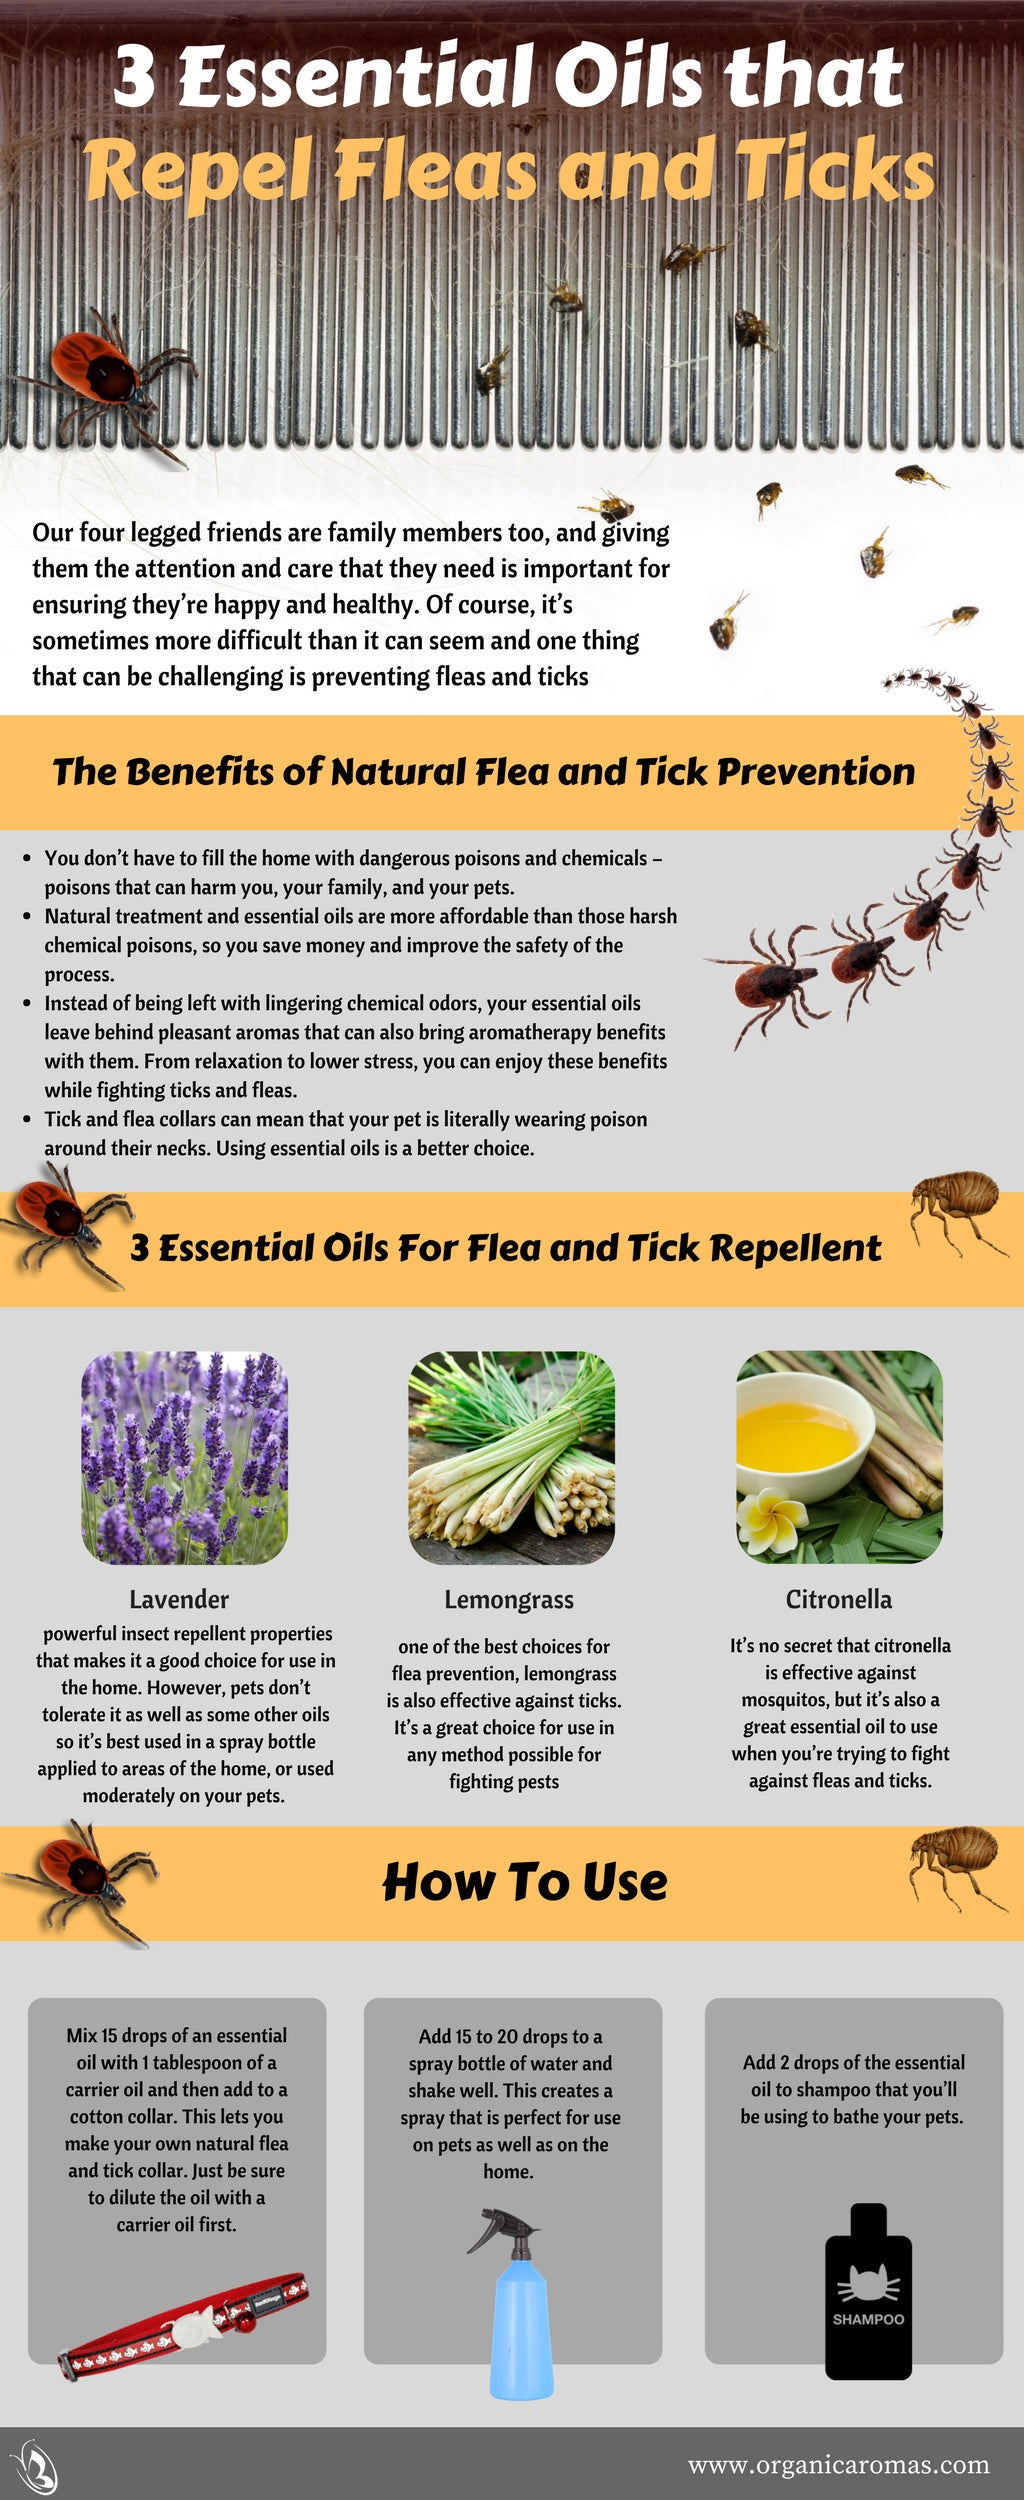 Discussion on this topic: How to Use Essential Oils to Prevent , how-to-use-essential-oils-to-prevent/